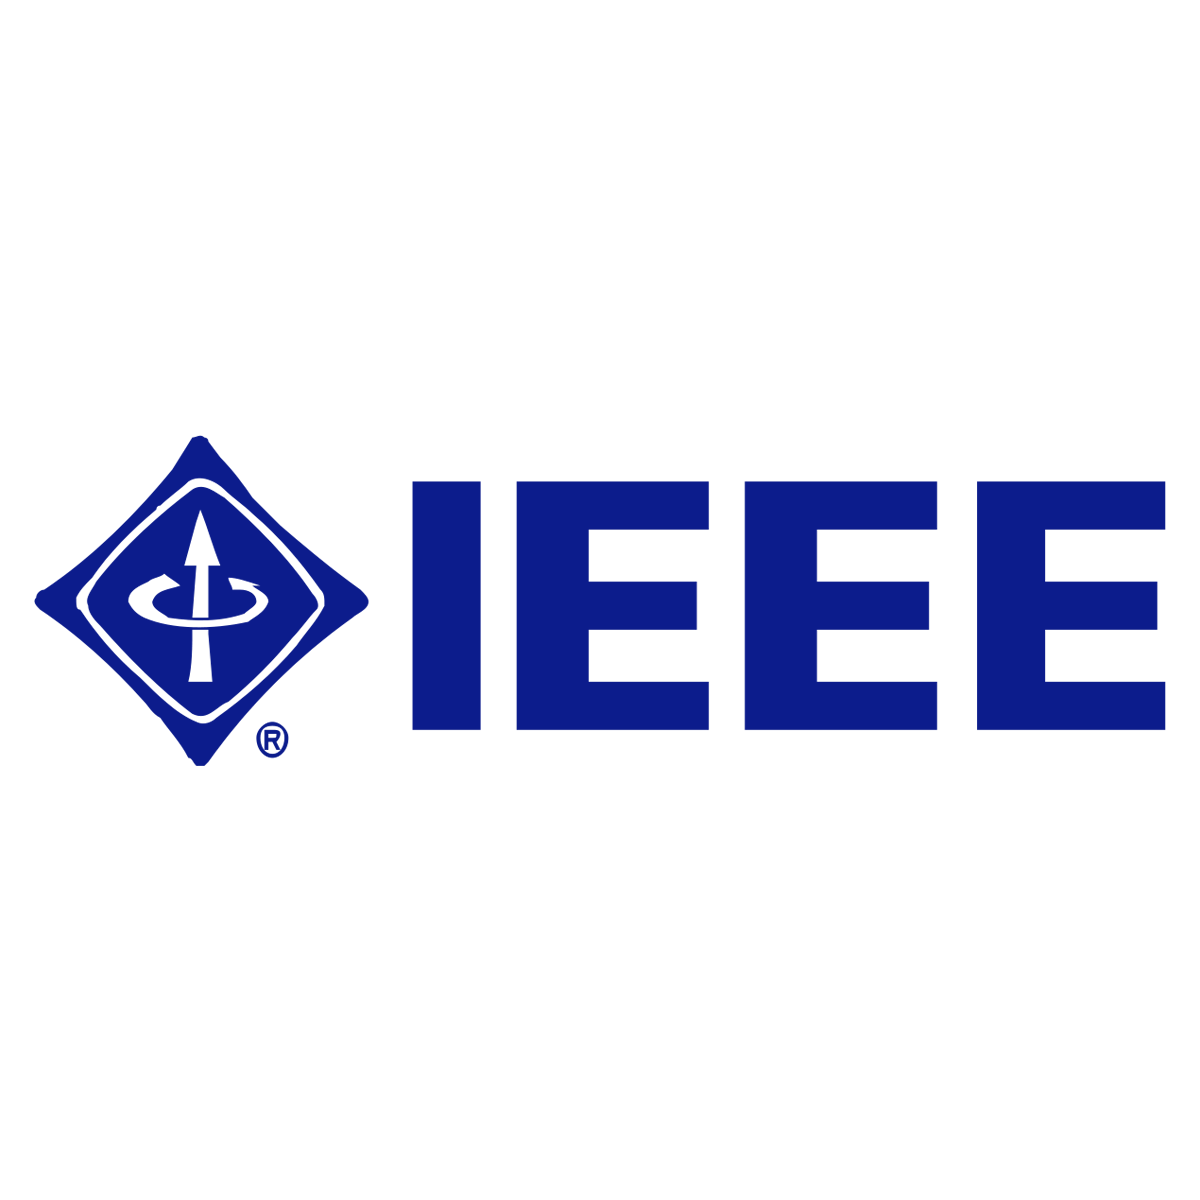 Institute of Electrical and Electronics Engineers (IEEE) logo